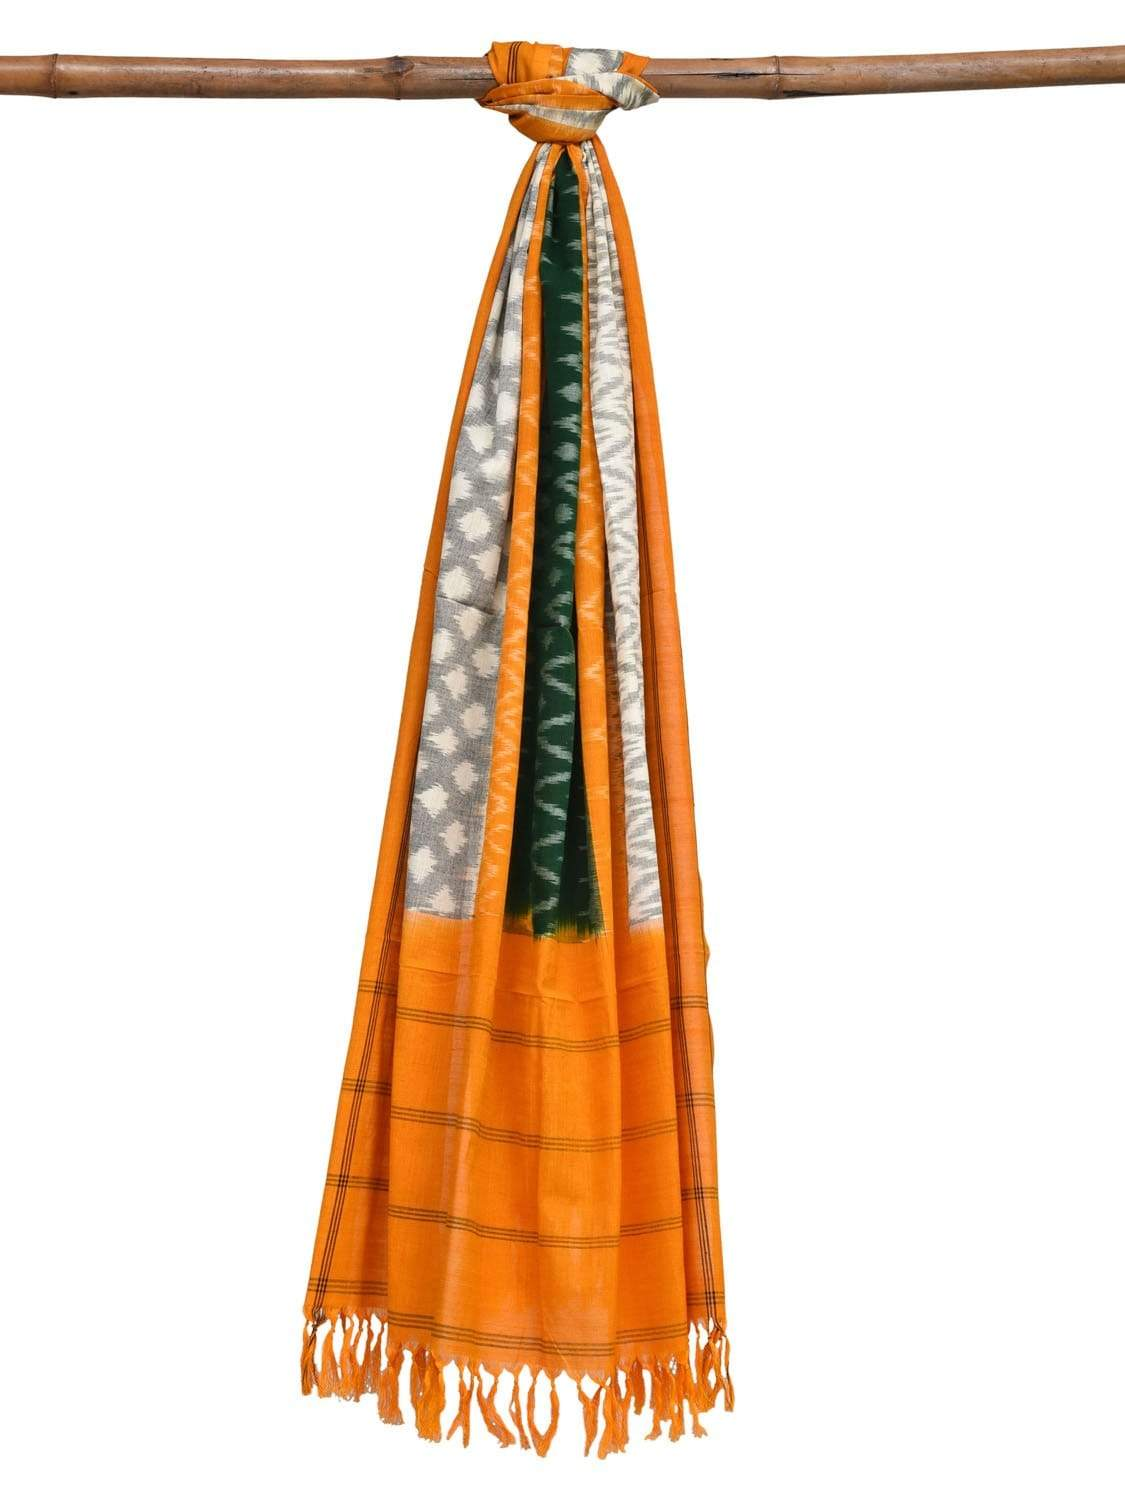 Yellow and Green Pochampally Ikat Cotton Handloom Dupatta with Triple Design ds1890